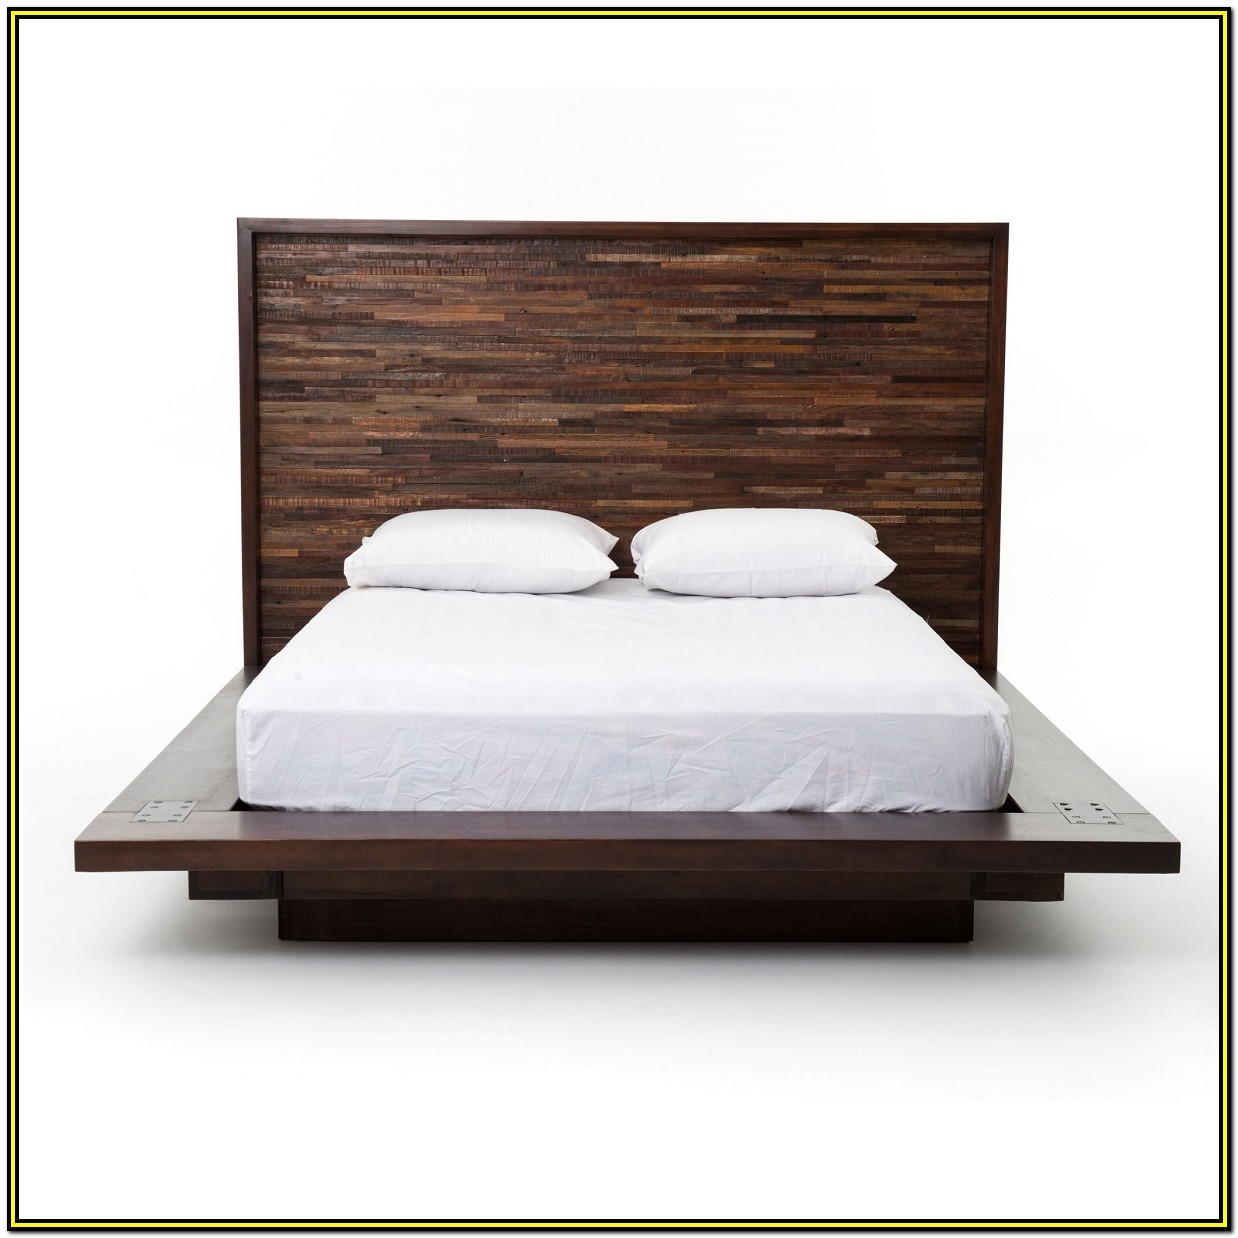 Reclaimed Wood Bed Frame Queen